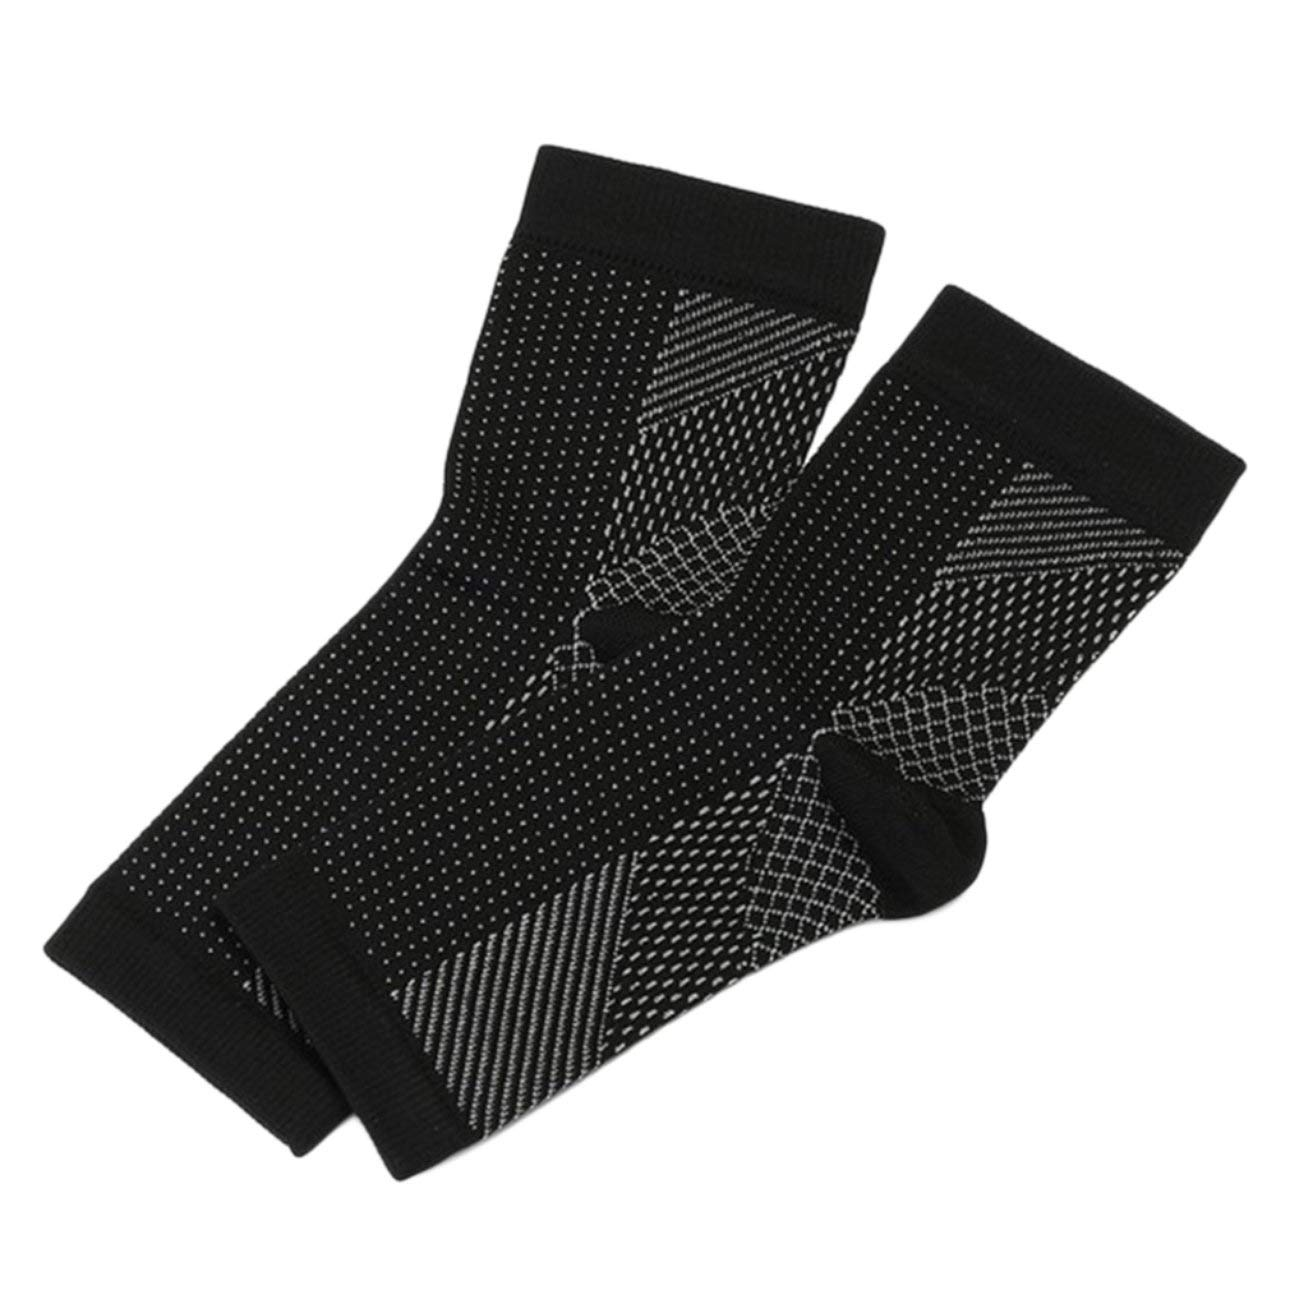 Liobaba Foot Anti-Fatigue Compression Foot Sleeve Exercise Running Basketball Anti-Fatigue Ankle Brace with Arch Support Pain Relief from Heel Spurs